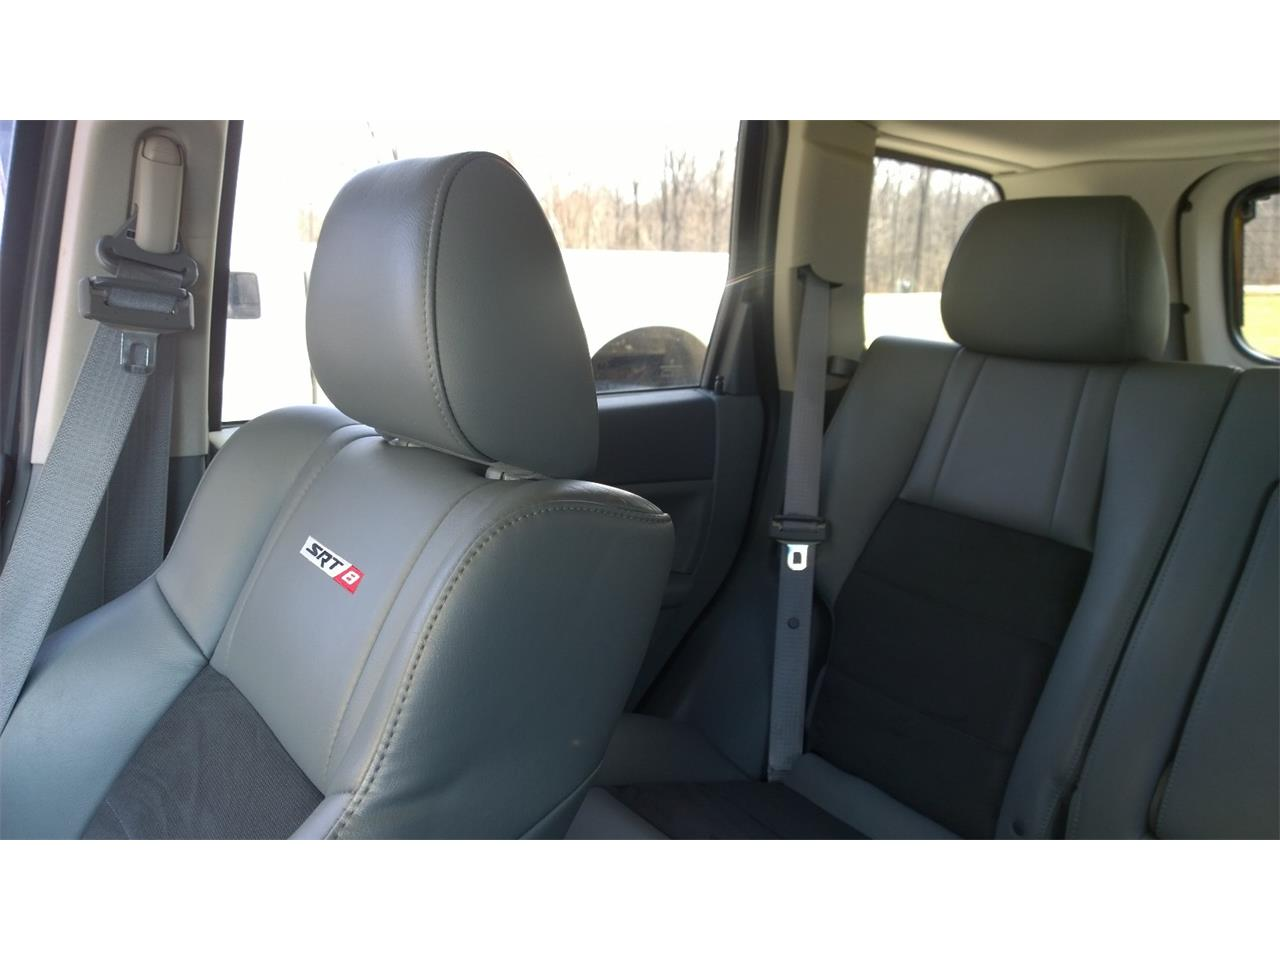 Large Picture of '07 Jeep Grand Cherokee located in Ohio - $26,000.00 Offered by a Private Seller - DX17